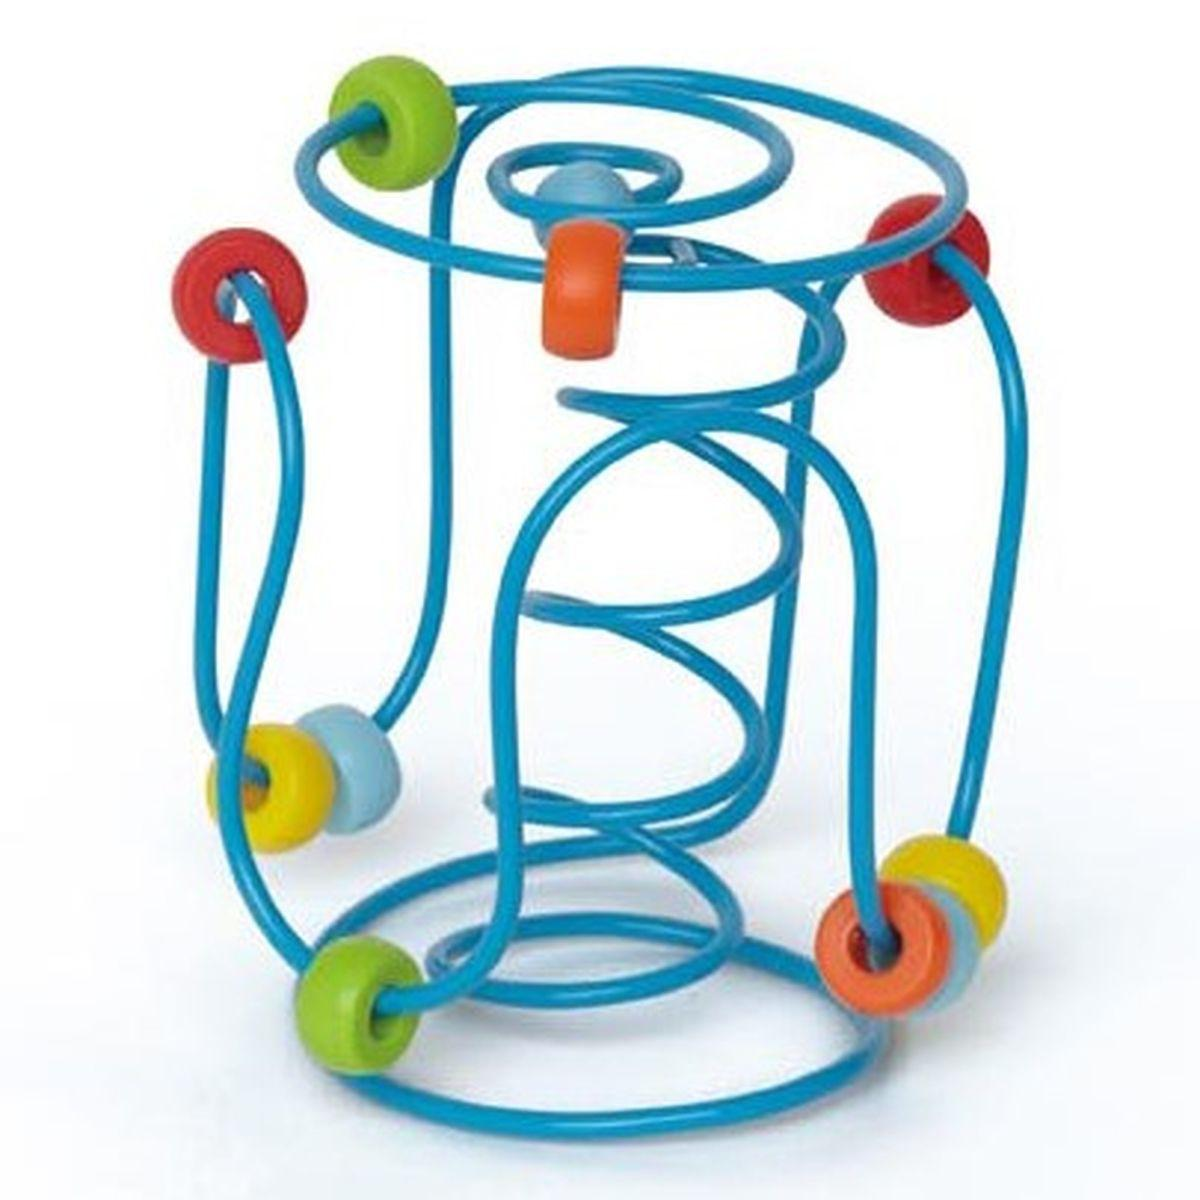 Boulier labyrinthe SPRING-A-LING Hape